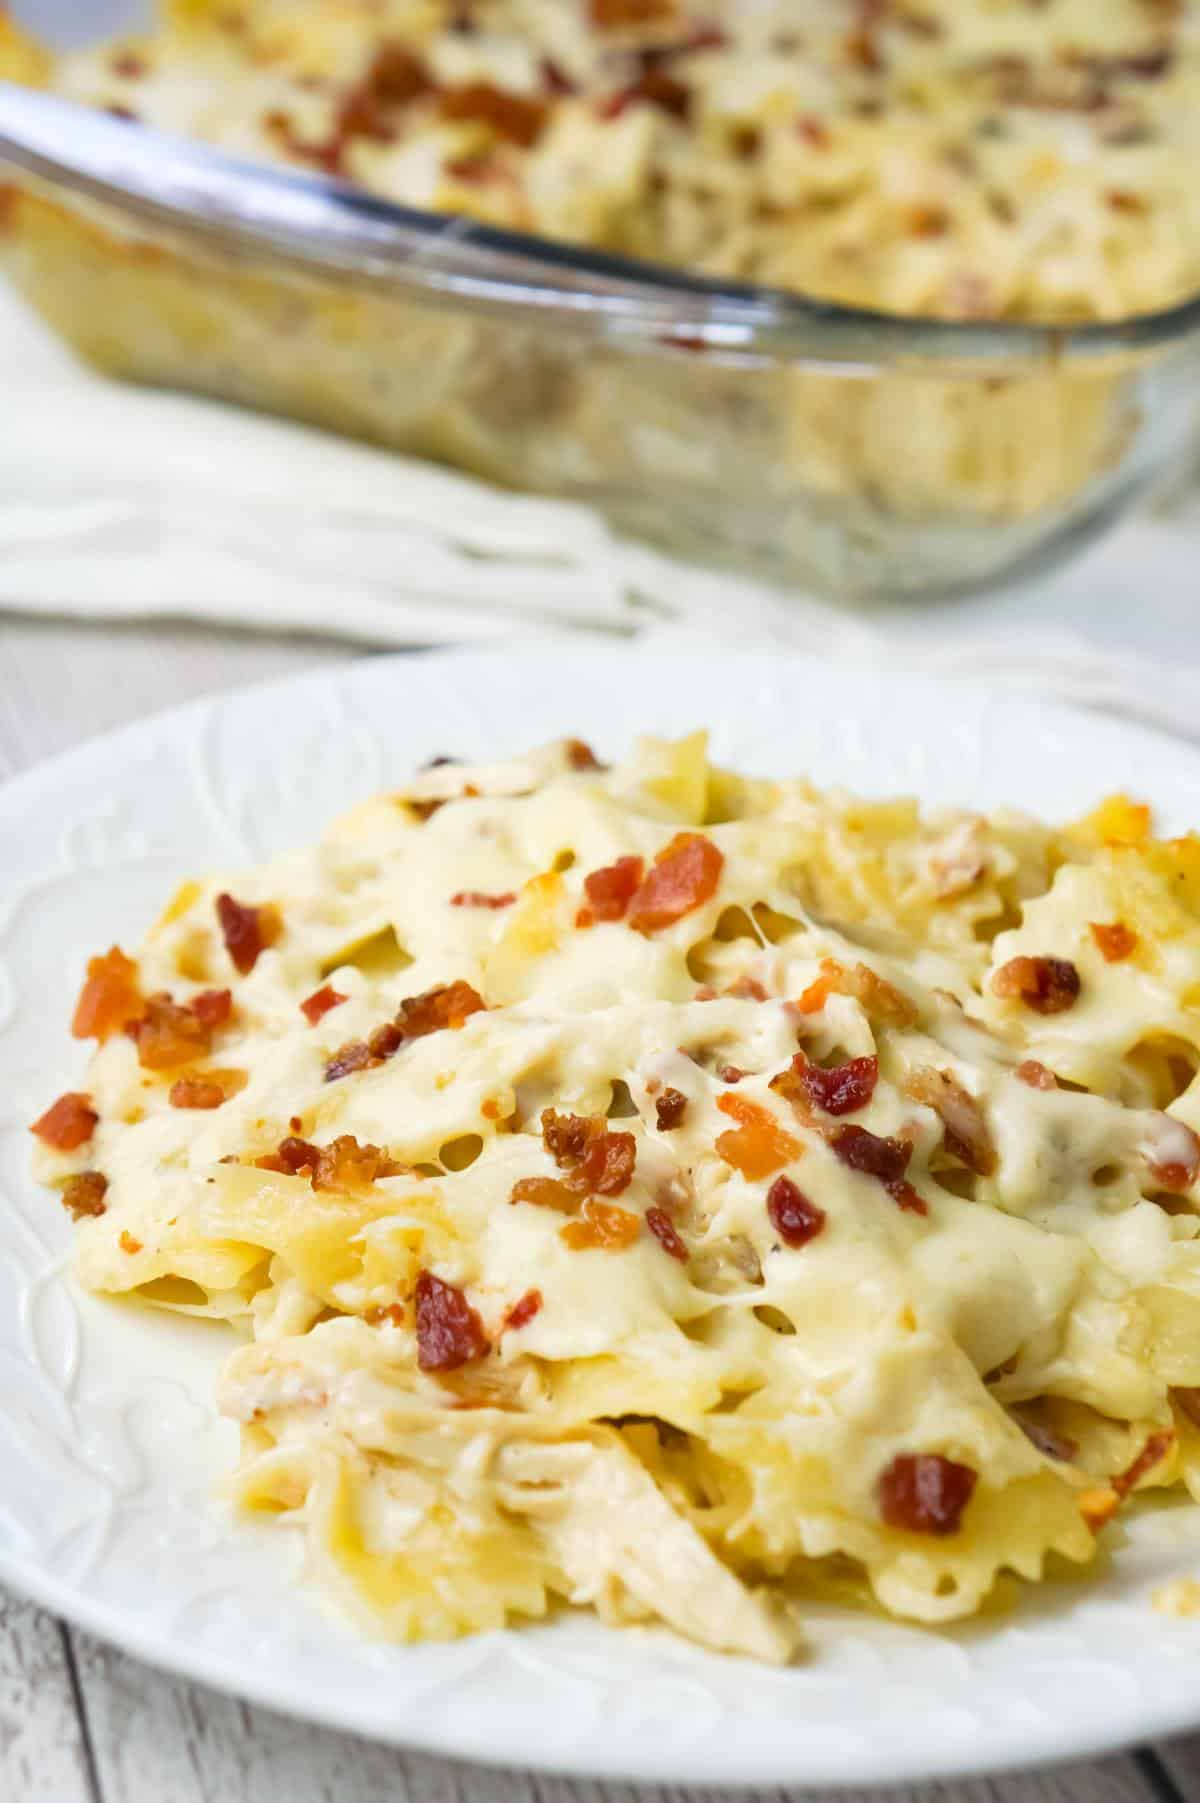 Baked Chicken Alfredo Pasta with Bacon is a delicious dinner recipe loaded with bow tie pasta, shredded chicken and crumbled bacon all in a creamy garlic Parmesan sauce and baked with mozzarella on top.